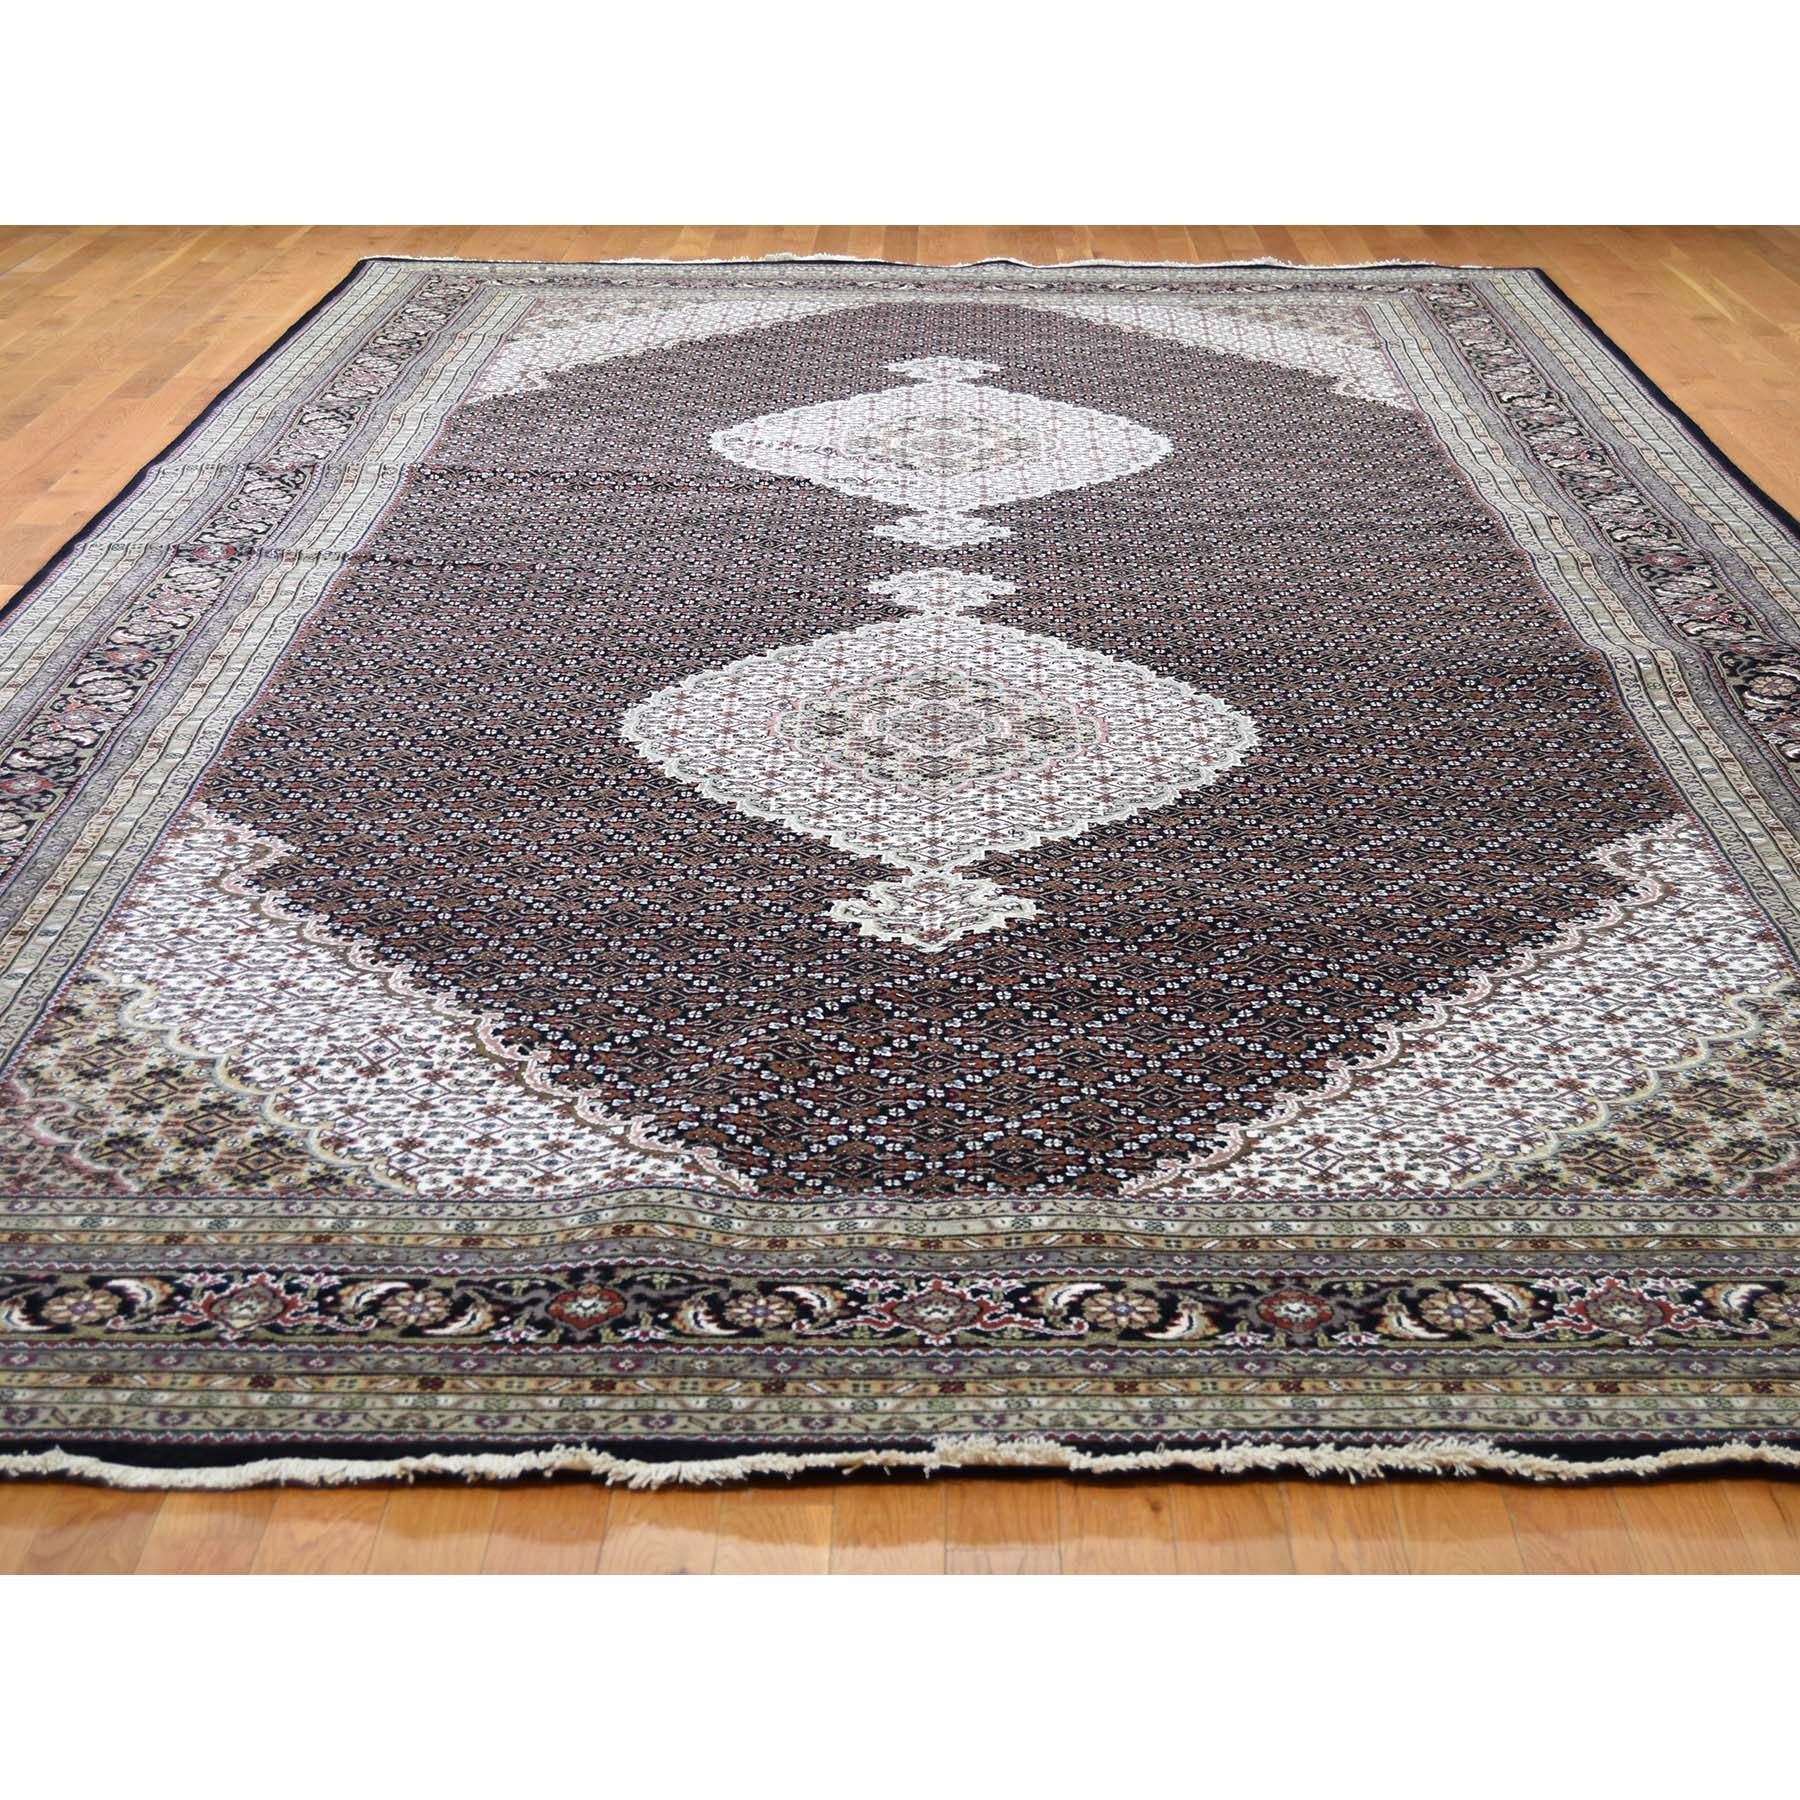 9-x18-2  Gallery Size Tabriz Mahi Design Wool and Silk Hand-Knotted Oriental Rug